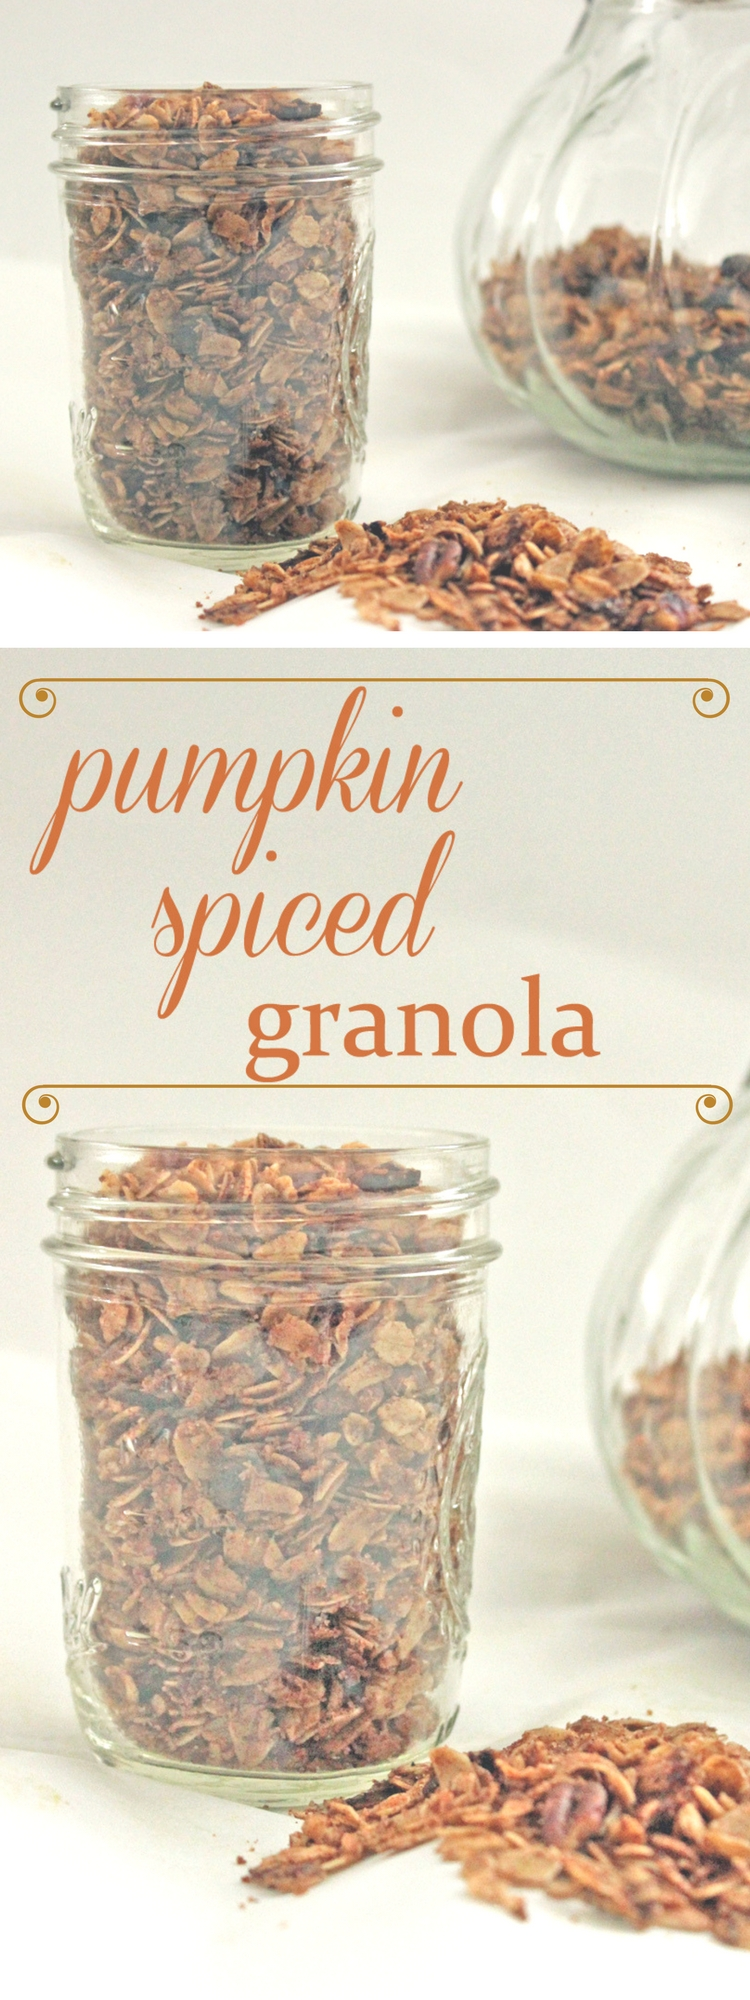 Pumpkin spiced granola recipe | Eat, Drink, and Save Money